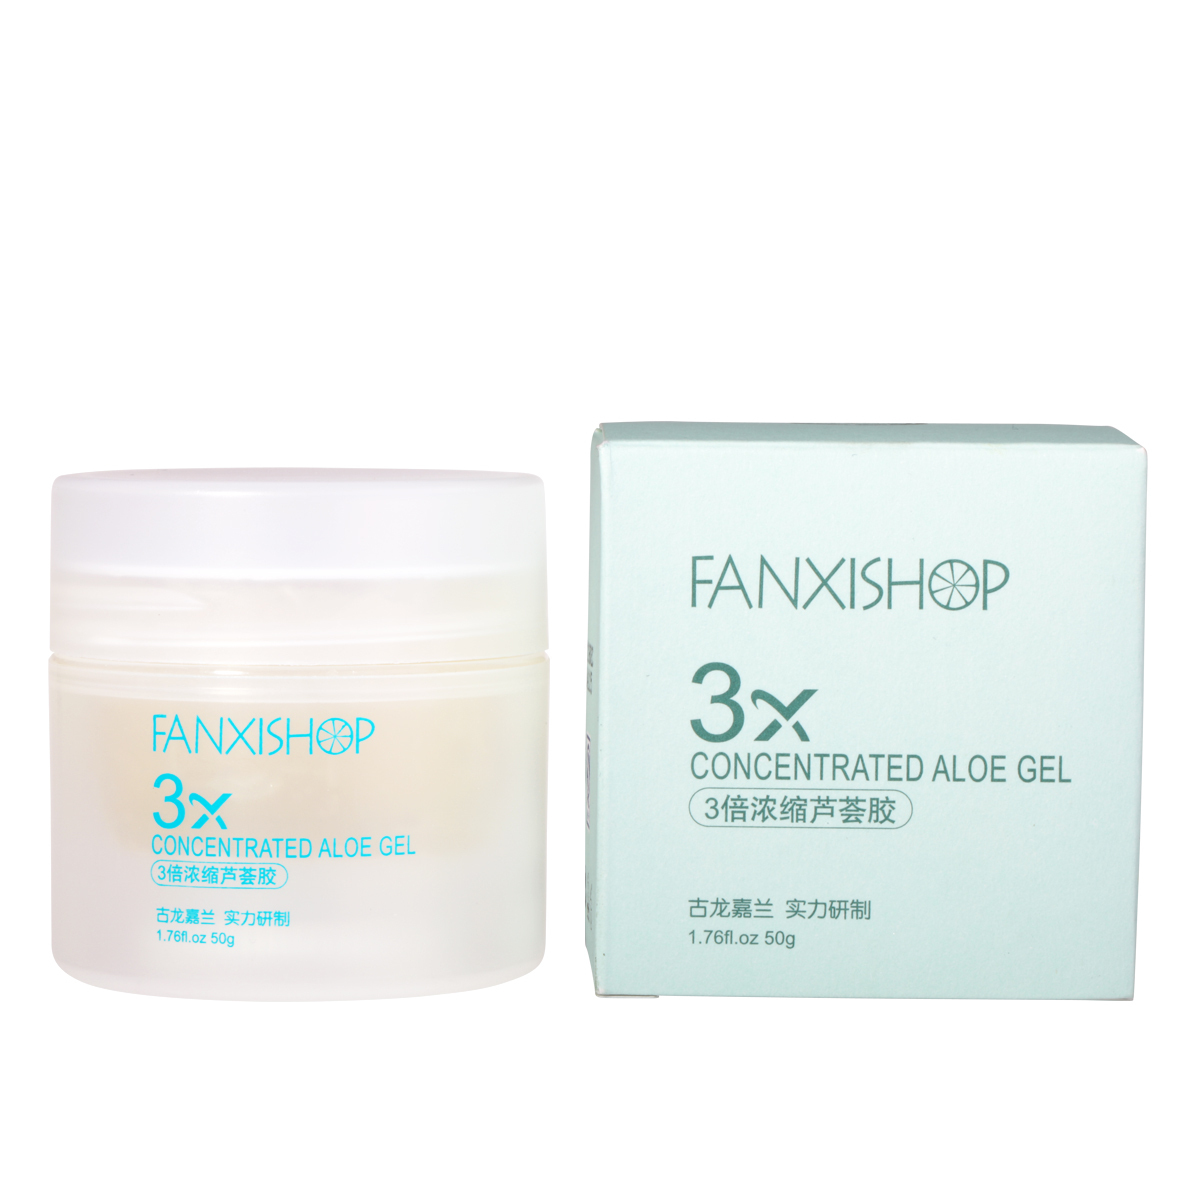 Fanxishop 50g sin and suffering